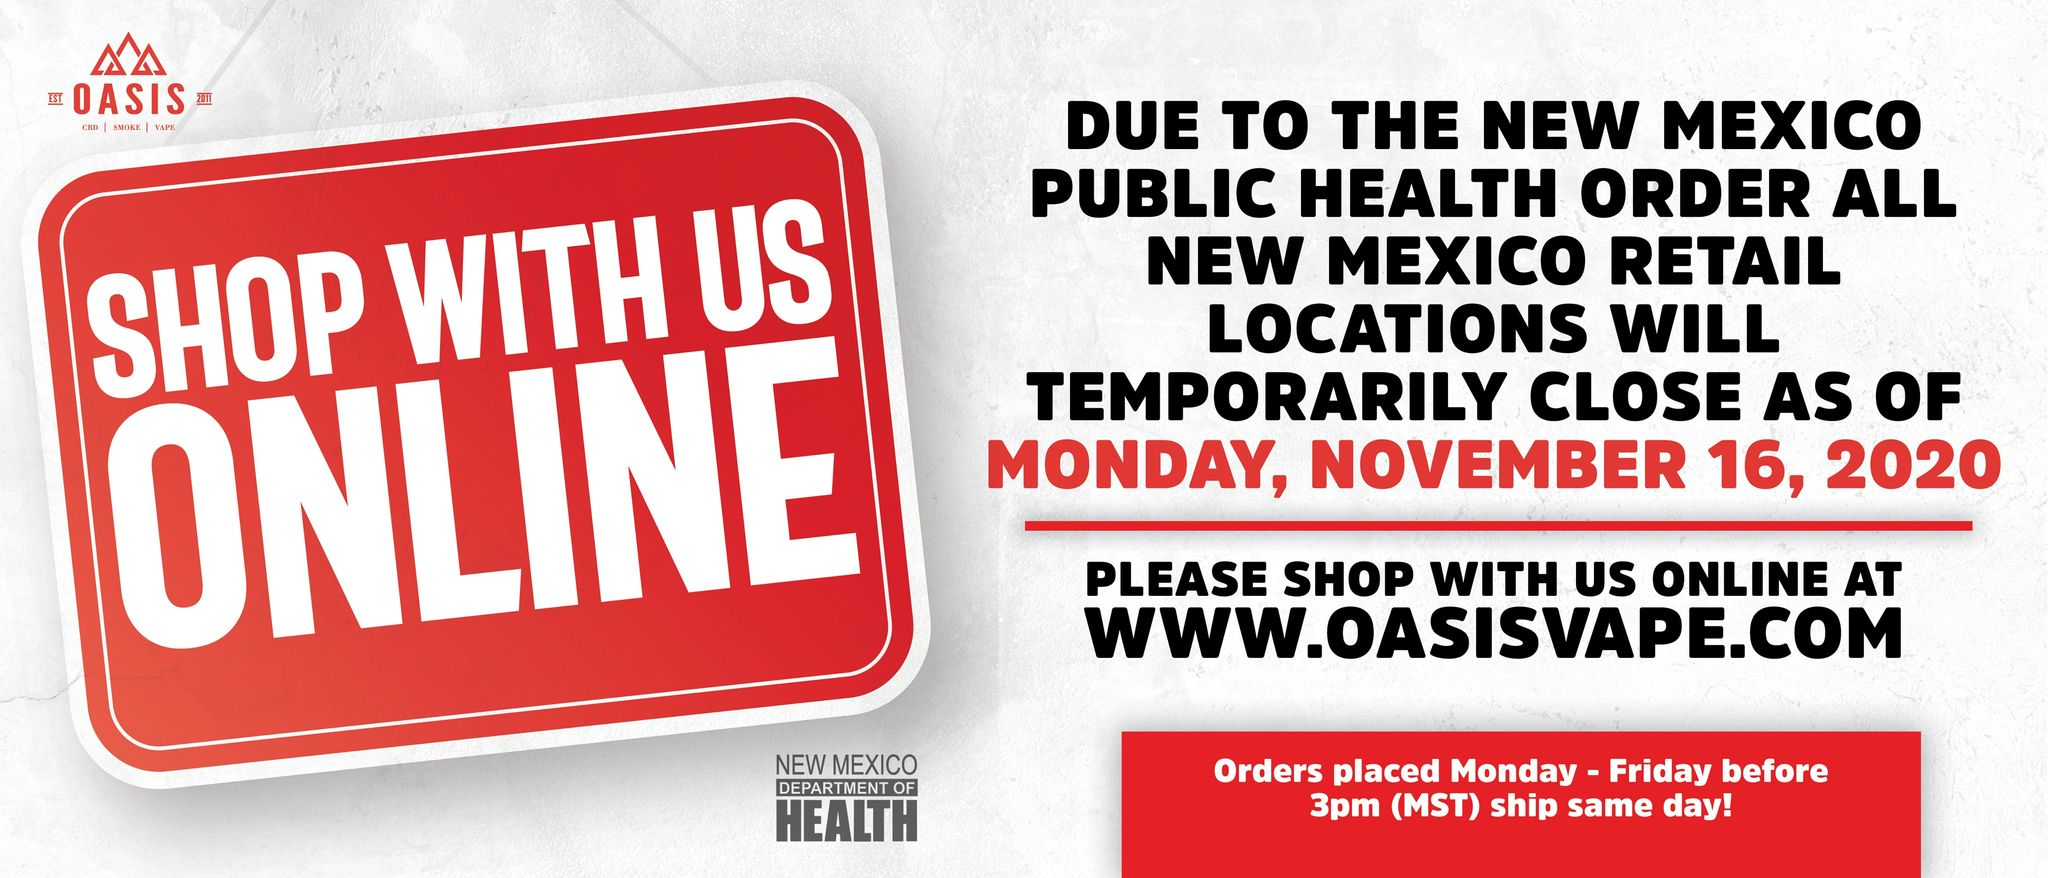 Due to the New Mexico Public Health Order all New Mexico retail locations will temporarily close as of Monday, November 16, 2020. You can still shop with us online.  Orders placed Monday through Friday before 3:00pm Mountain Standard Time ship same day.